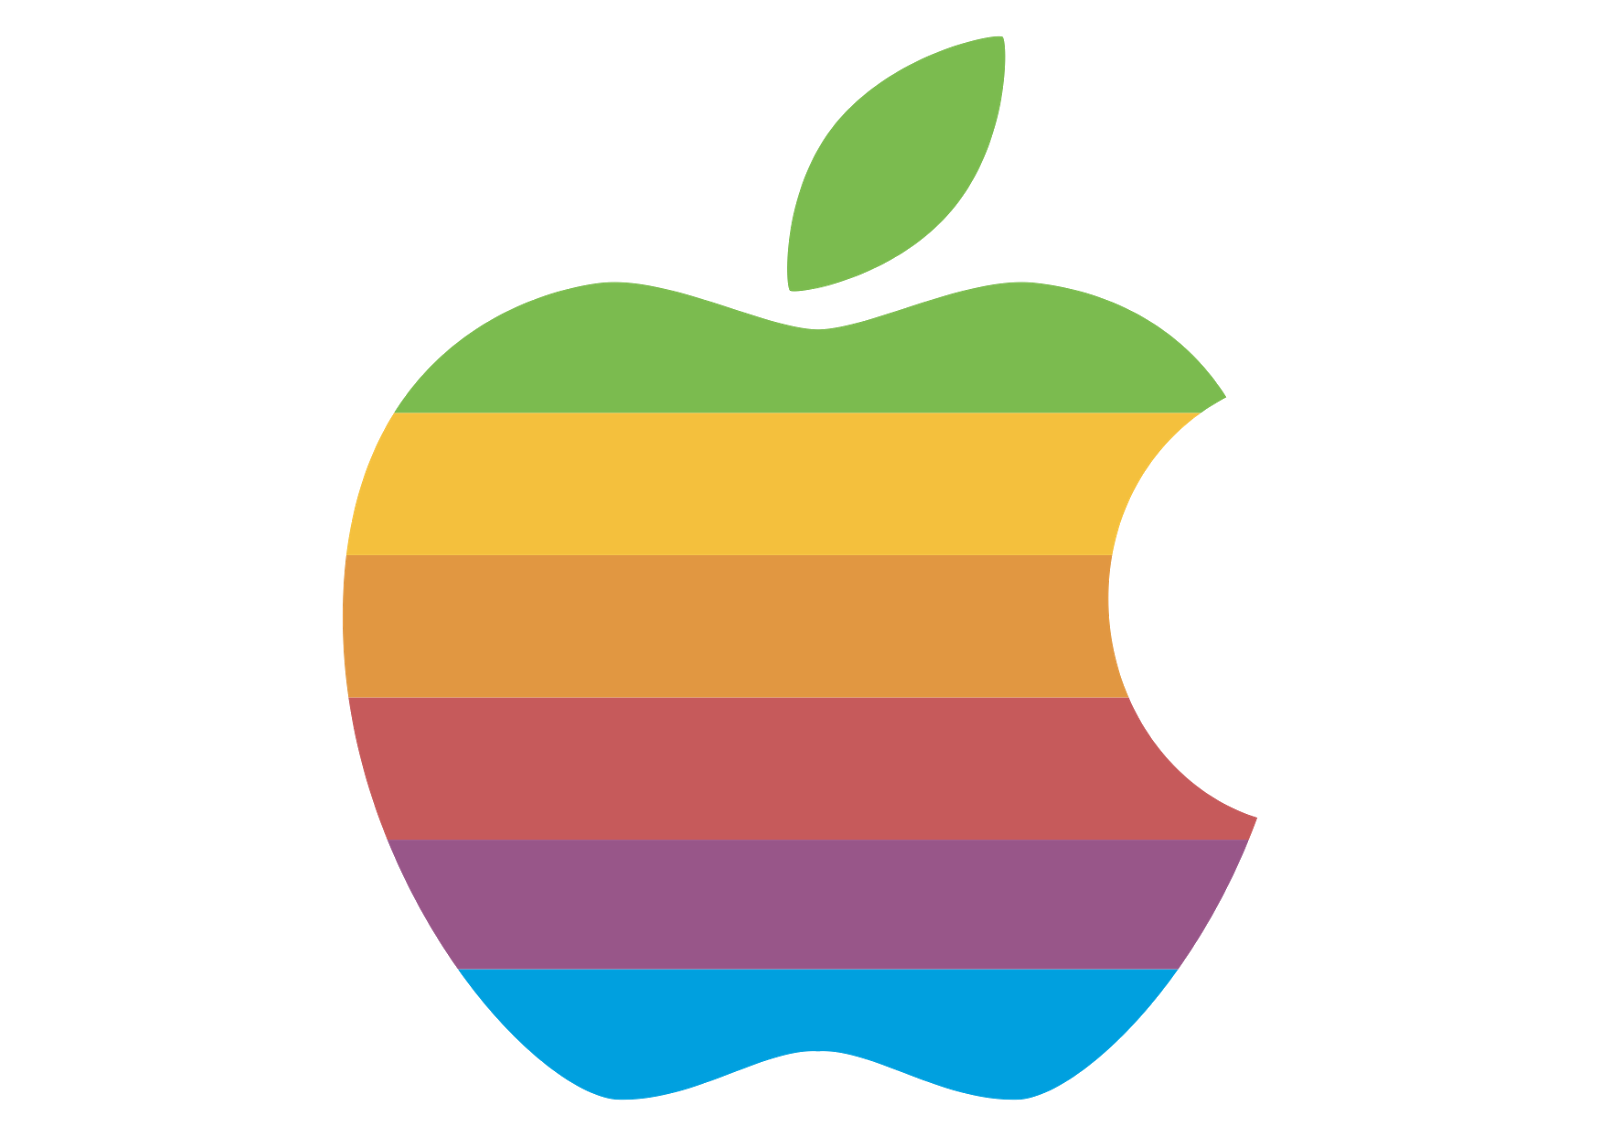 Apple logo vector full color technology company Free vector program mac